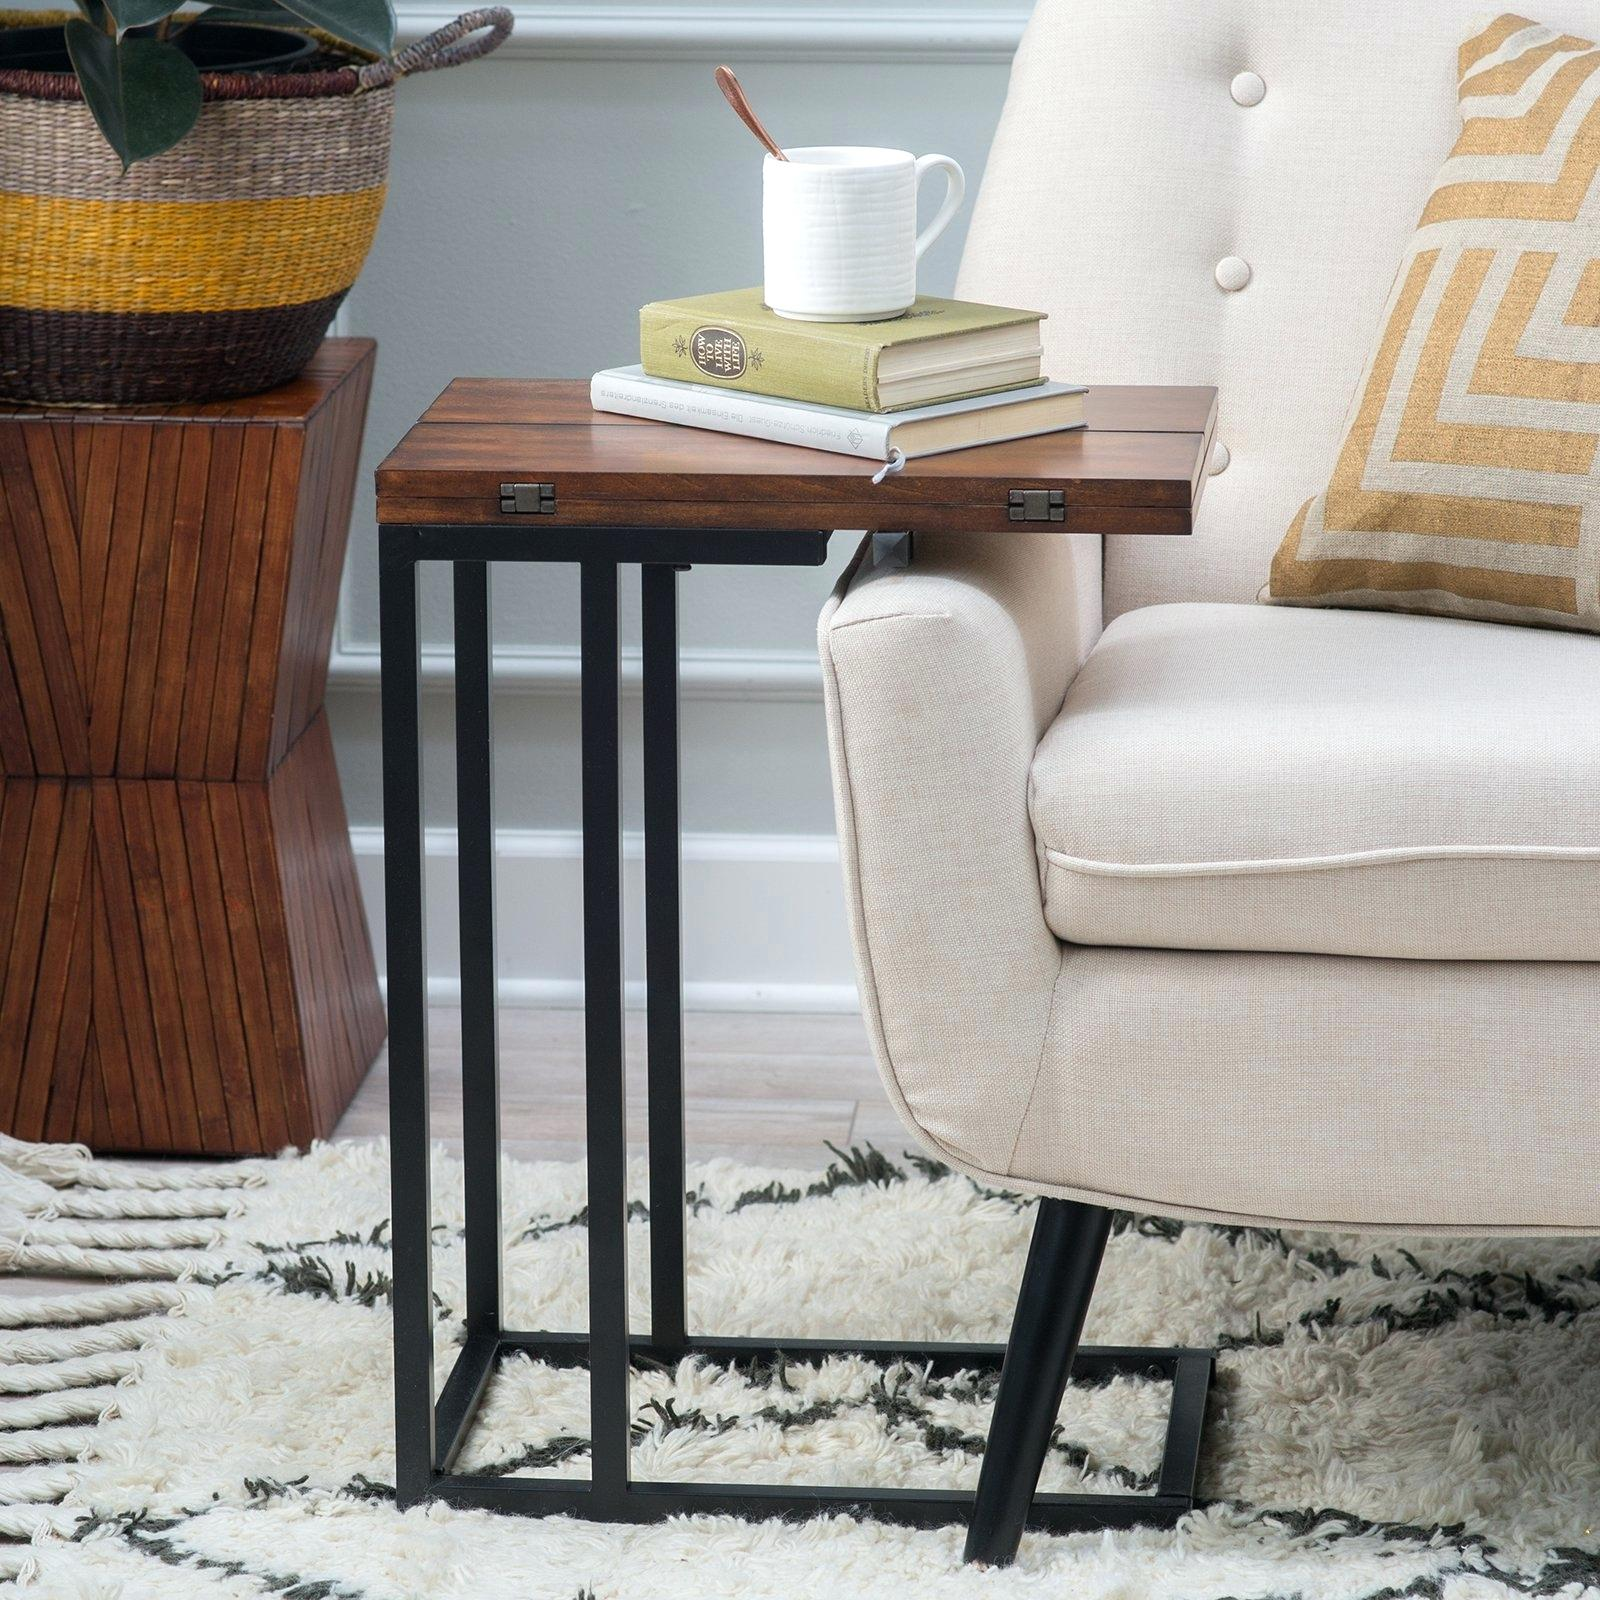 unusual accent tables full size unique small narrow drake expanding table chairs for bedrooms spaces living room threshold windham buffet silver end wall ikea night baby changing